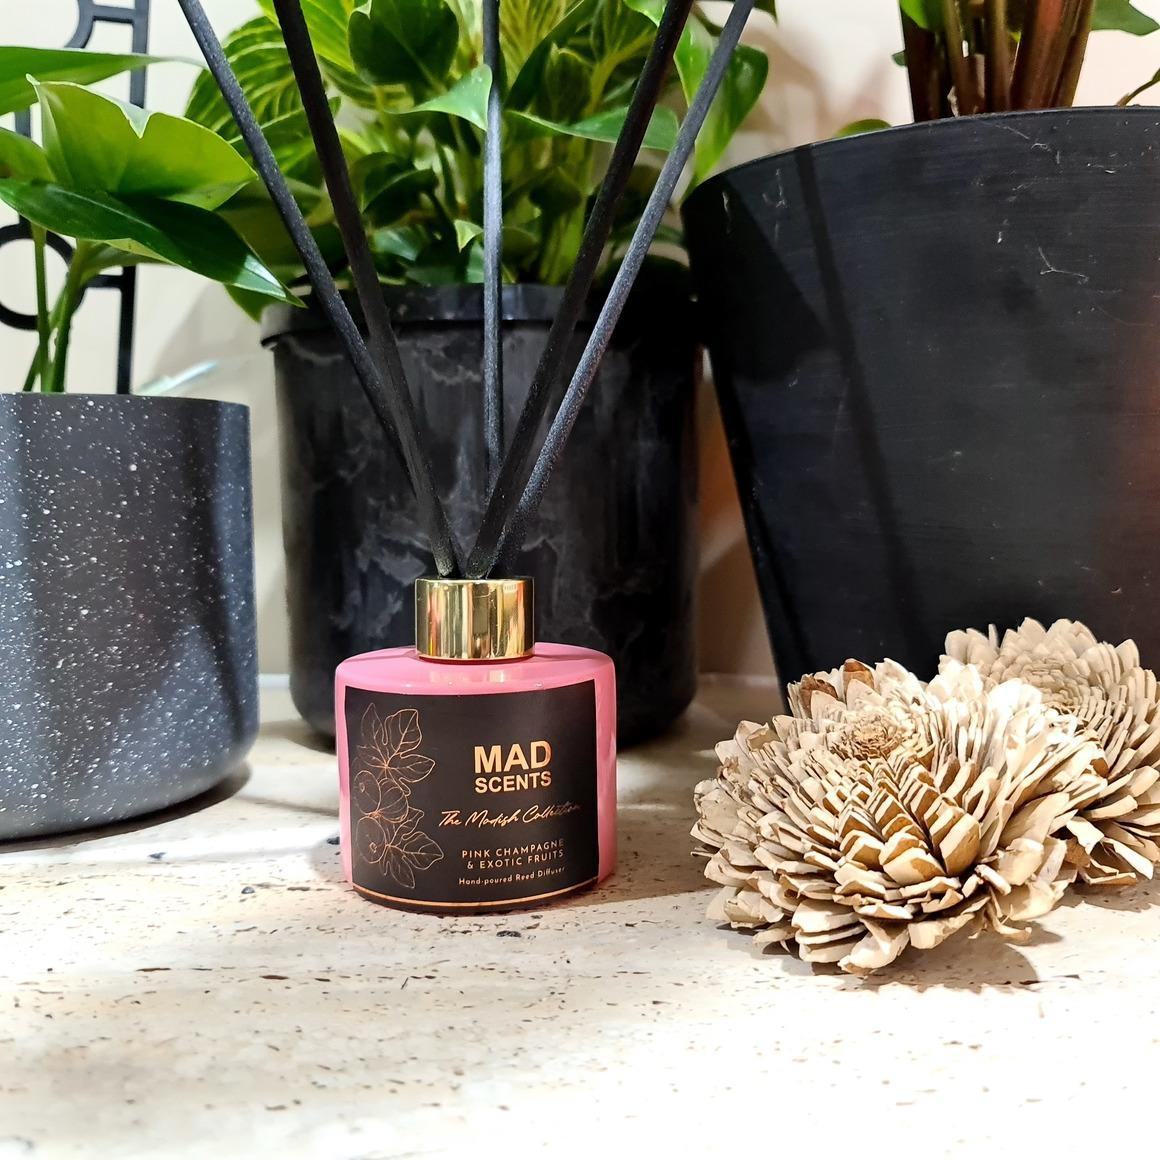 Pink Champagne & Exotic Fruits reed diffuser | Trada Marketplace